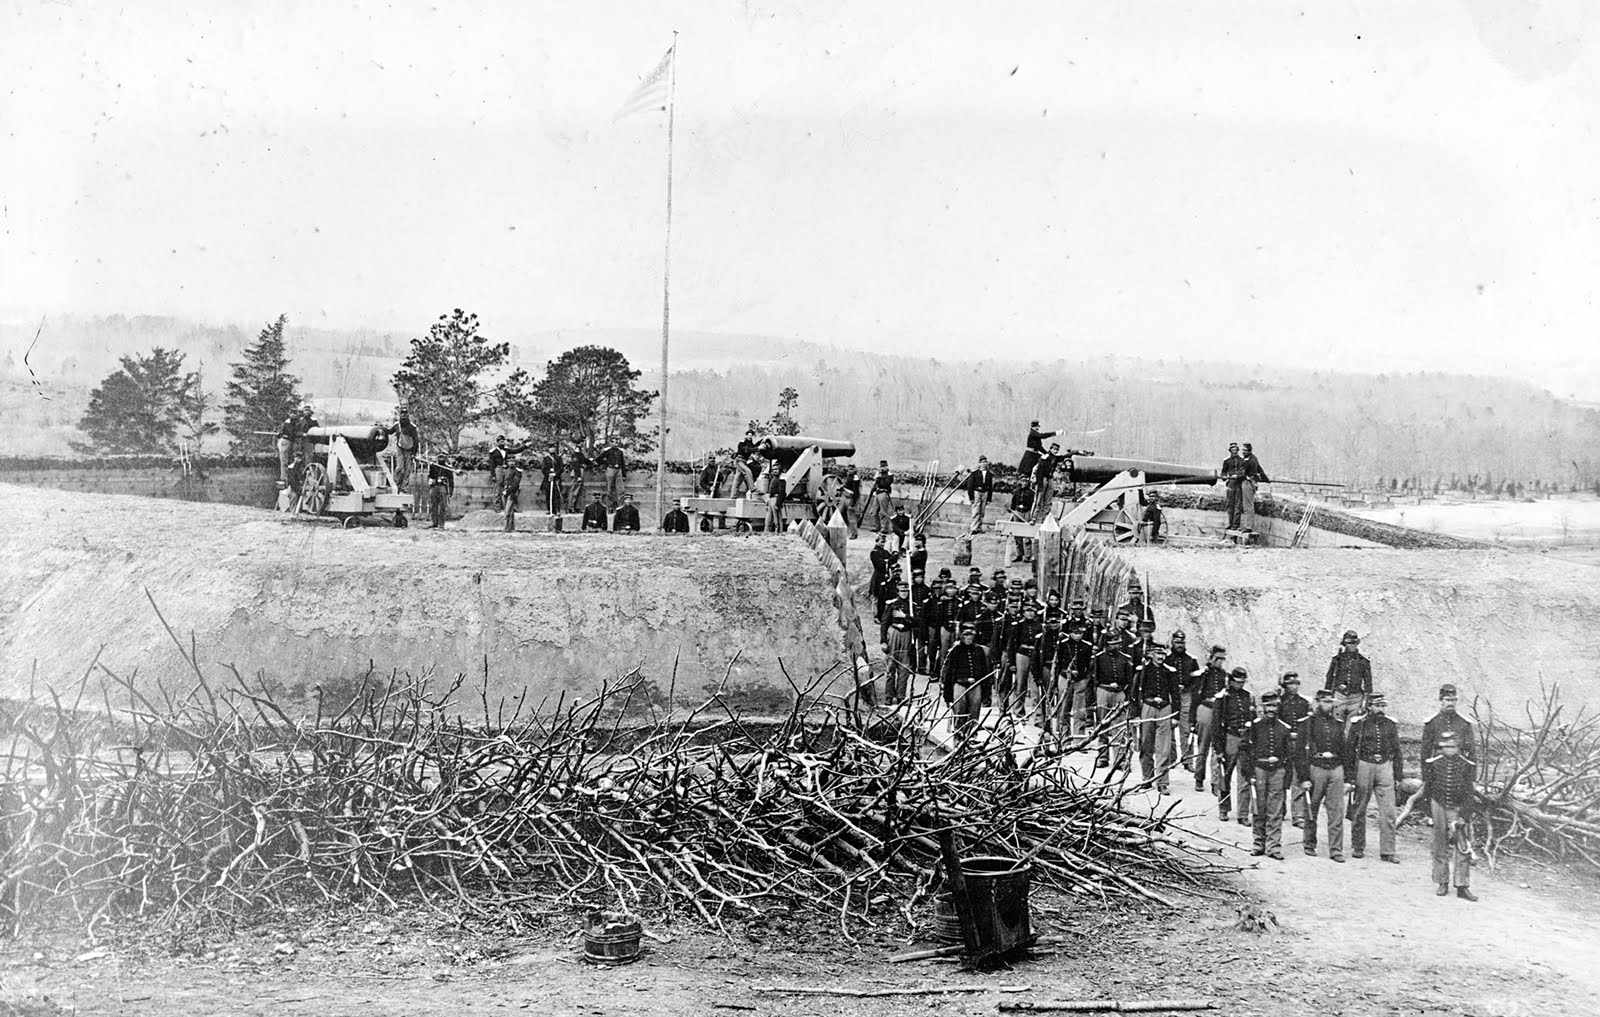 A Day In The Life Of The Civil War July